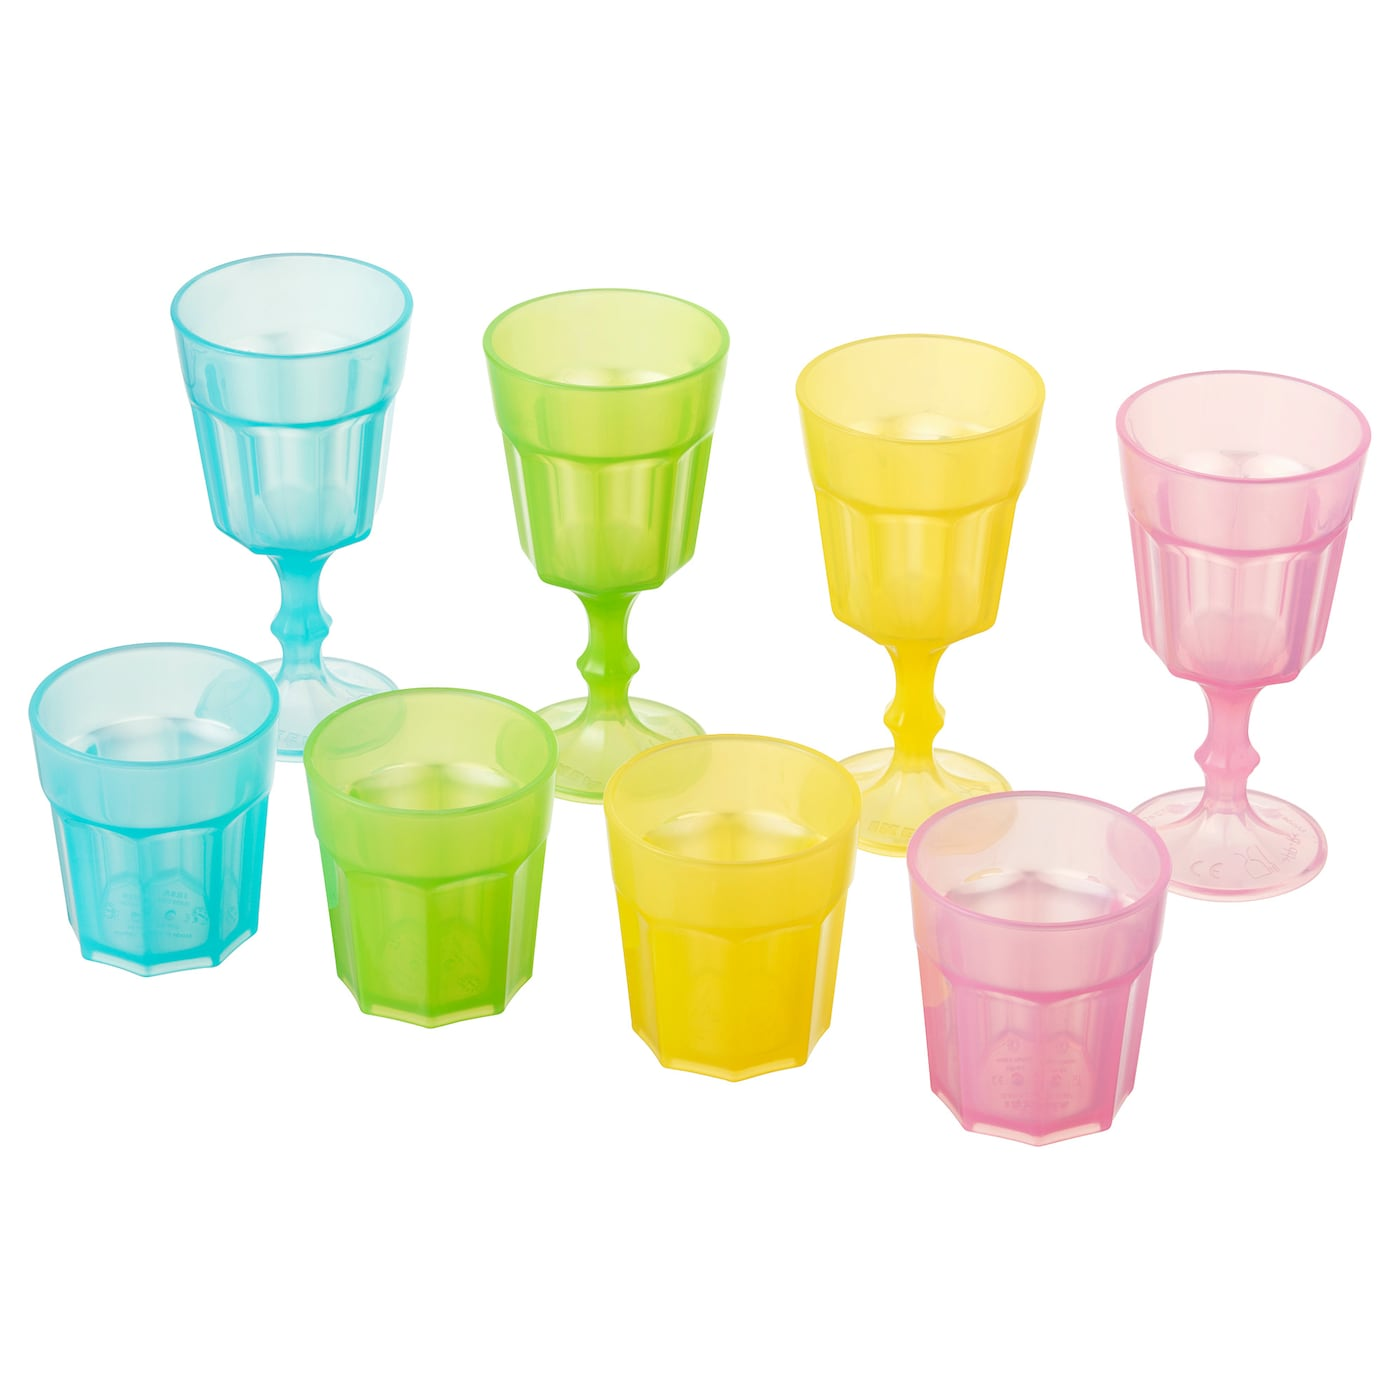 IKEA DUKTIG glass Mini drinking glass and goblet for play. Made of durable plastic.